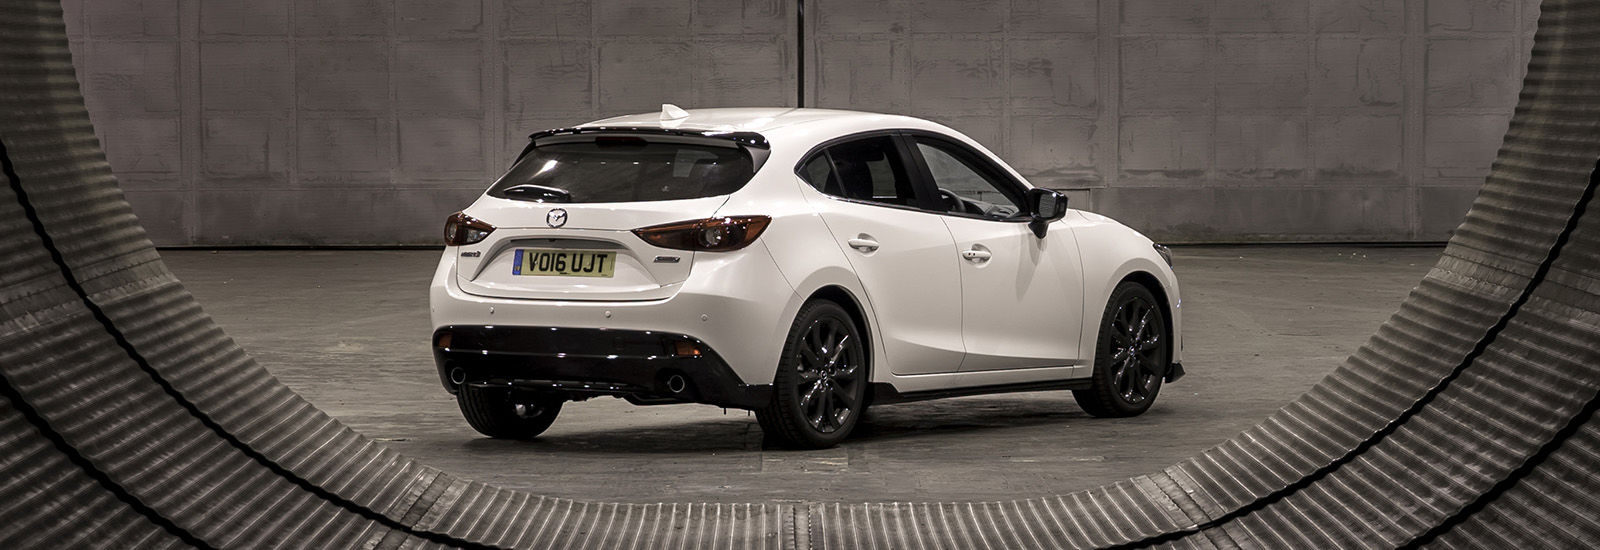 review expert jbe sport mazda first drive